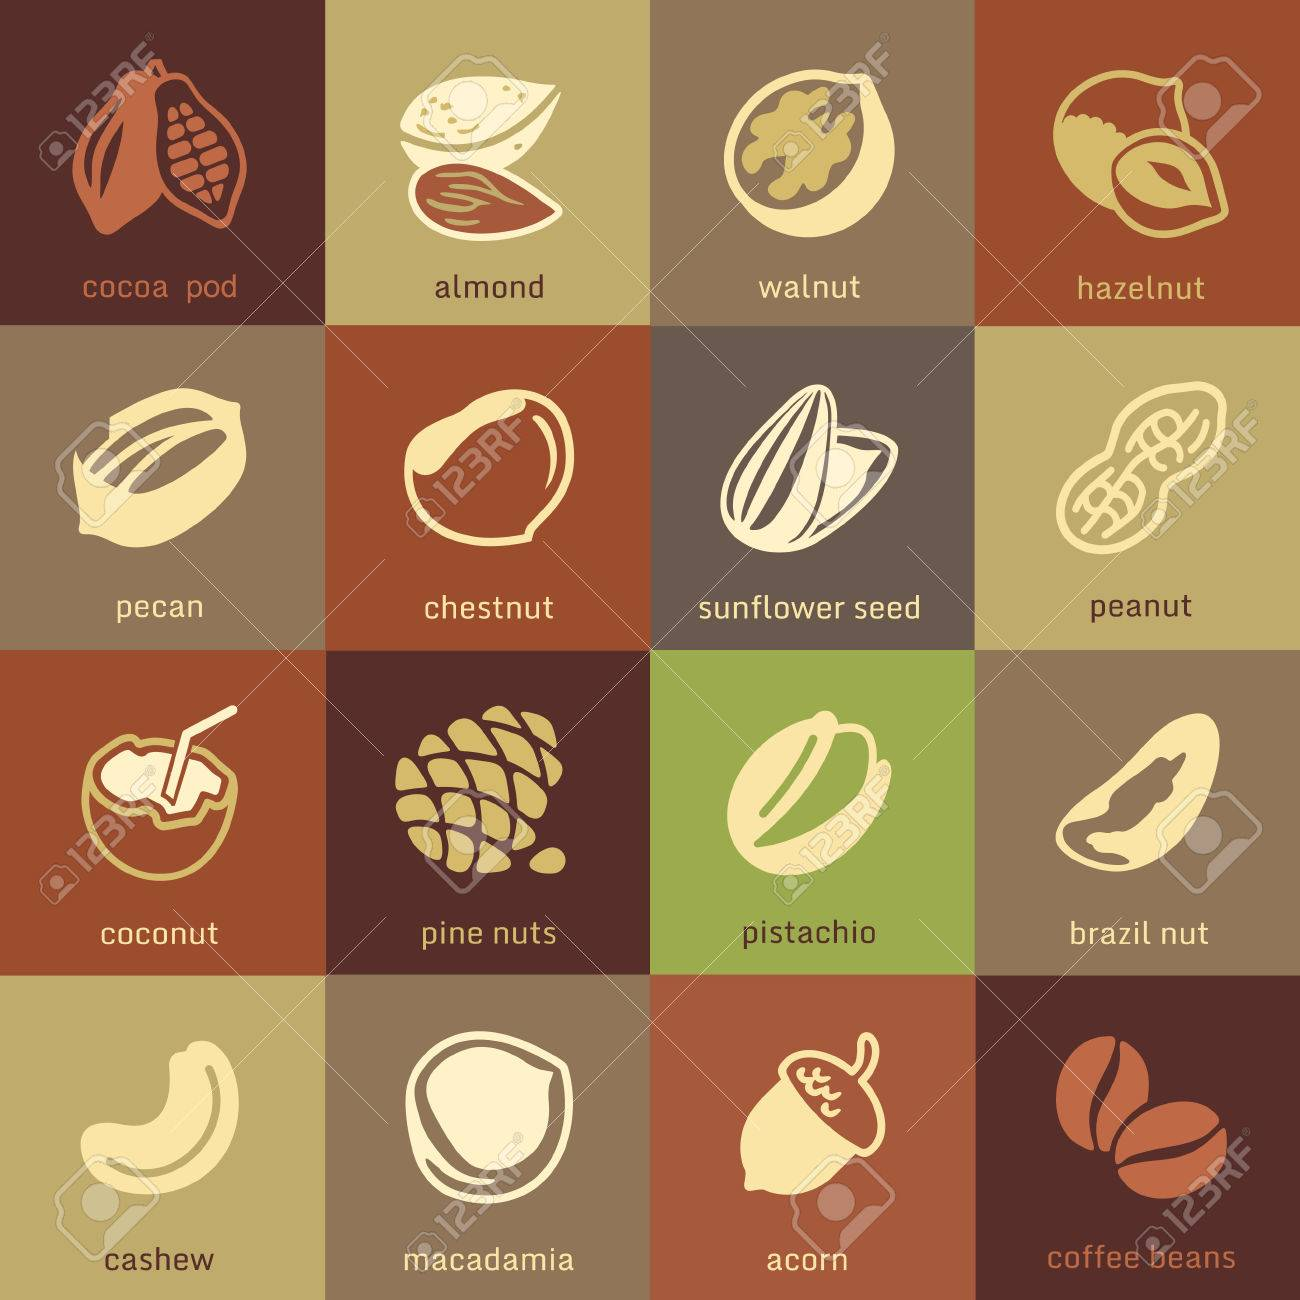 Web icons collection - nuts, beans and seed - 35616432